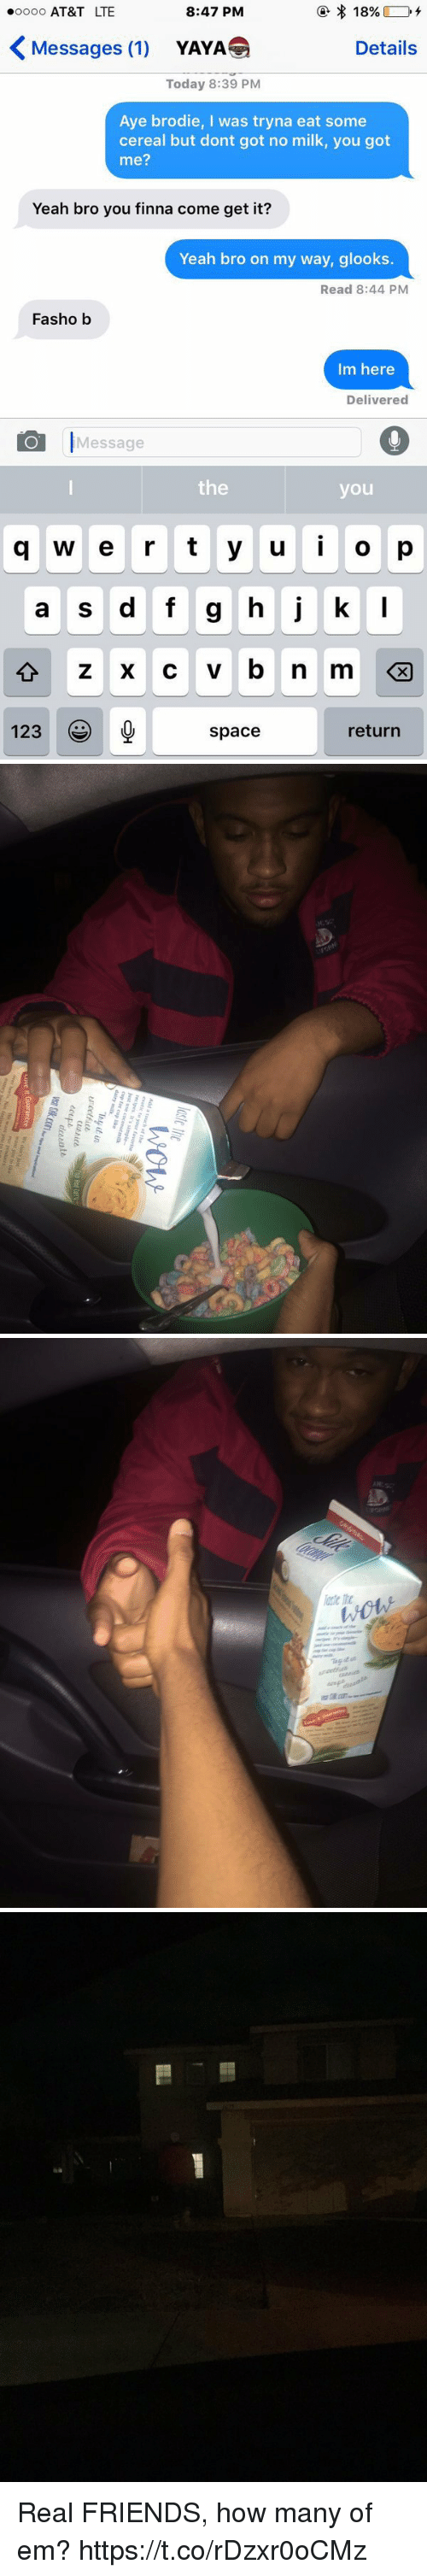 Friends, Funny, and Real Friends: 18%  8:47 PM  ooooo AT&T LTE  Messages (1)  Details  YAYA  Today 8:39 PM  Aye brodie, I was tryna eat some  cereal but dont got no milk, you got  me?  Yeah bro you finna come get it?  Yeah bro on my way, glooks  Read 8:44 PM  Fasho b  Im here  Delivered  O Message  the  you  q w e r t y u i o p  a s d f g h j k  l  123  return  space   lost ite  wow  Add at  to your favorite  recipes It's simple-  just use coconutmilk  cup for cup like  Thy止迅  Thy it in  ur.cotfuet  U'octfitΔ  Tha Red Dry  (UlitL  Lahia  ect-F deeb  ecupidees业  dee atte  Vsat Silkcon.orws and  Lovett Guarantee  We den't just  Pur products   iti   cs Real FRIENDS, how many of em? https://t.co/rDzxr0oCMz